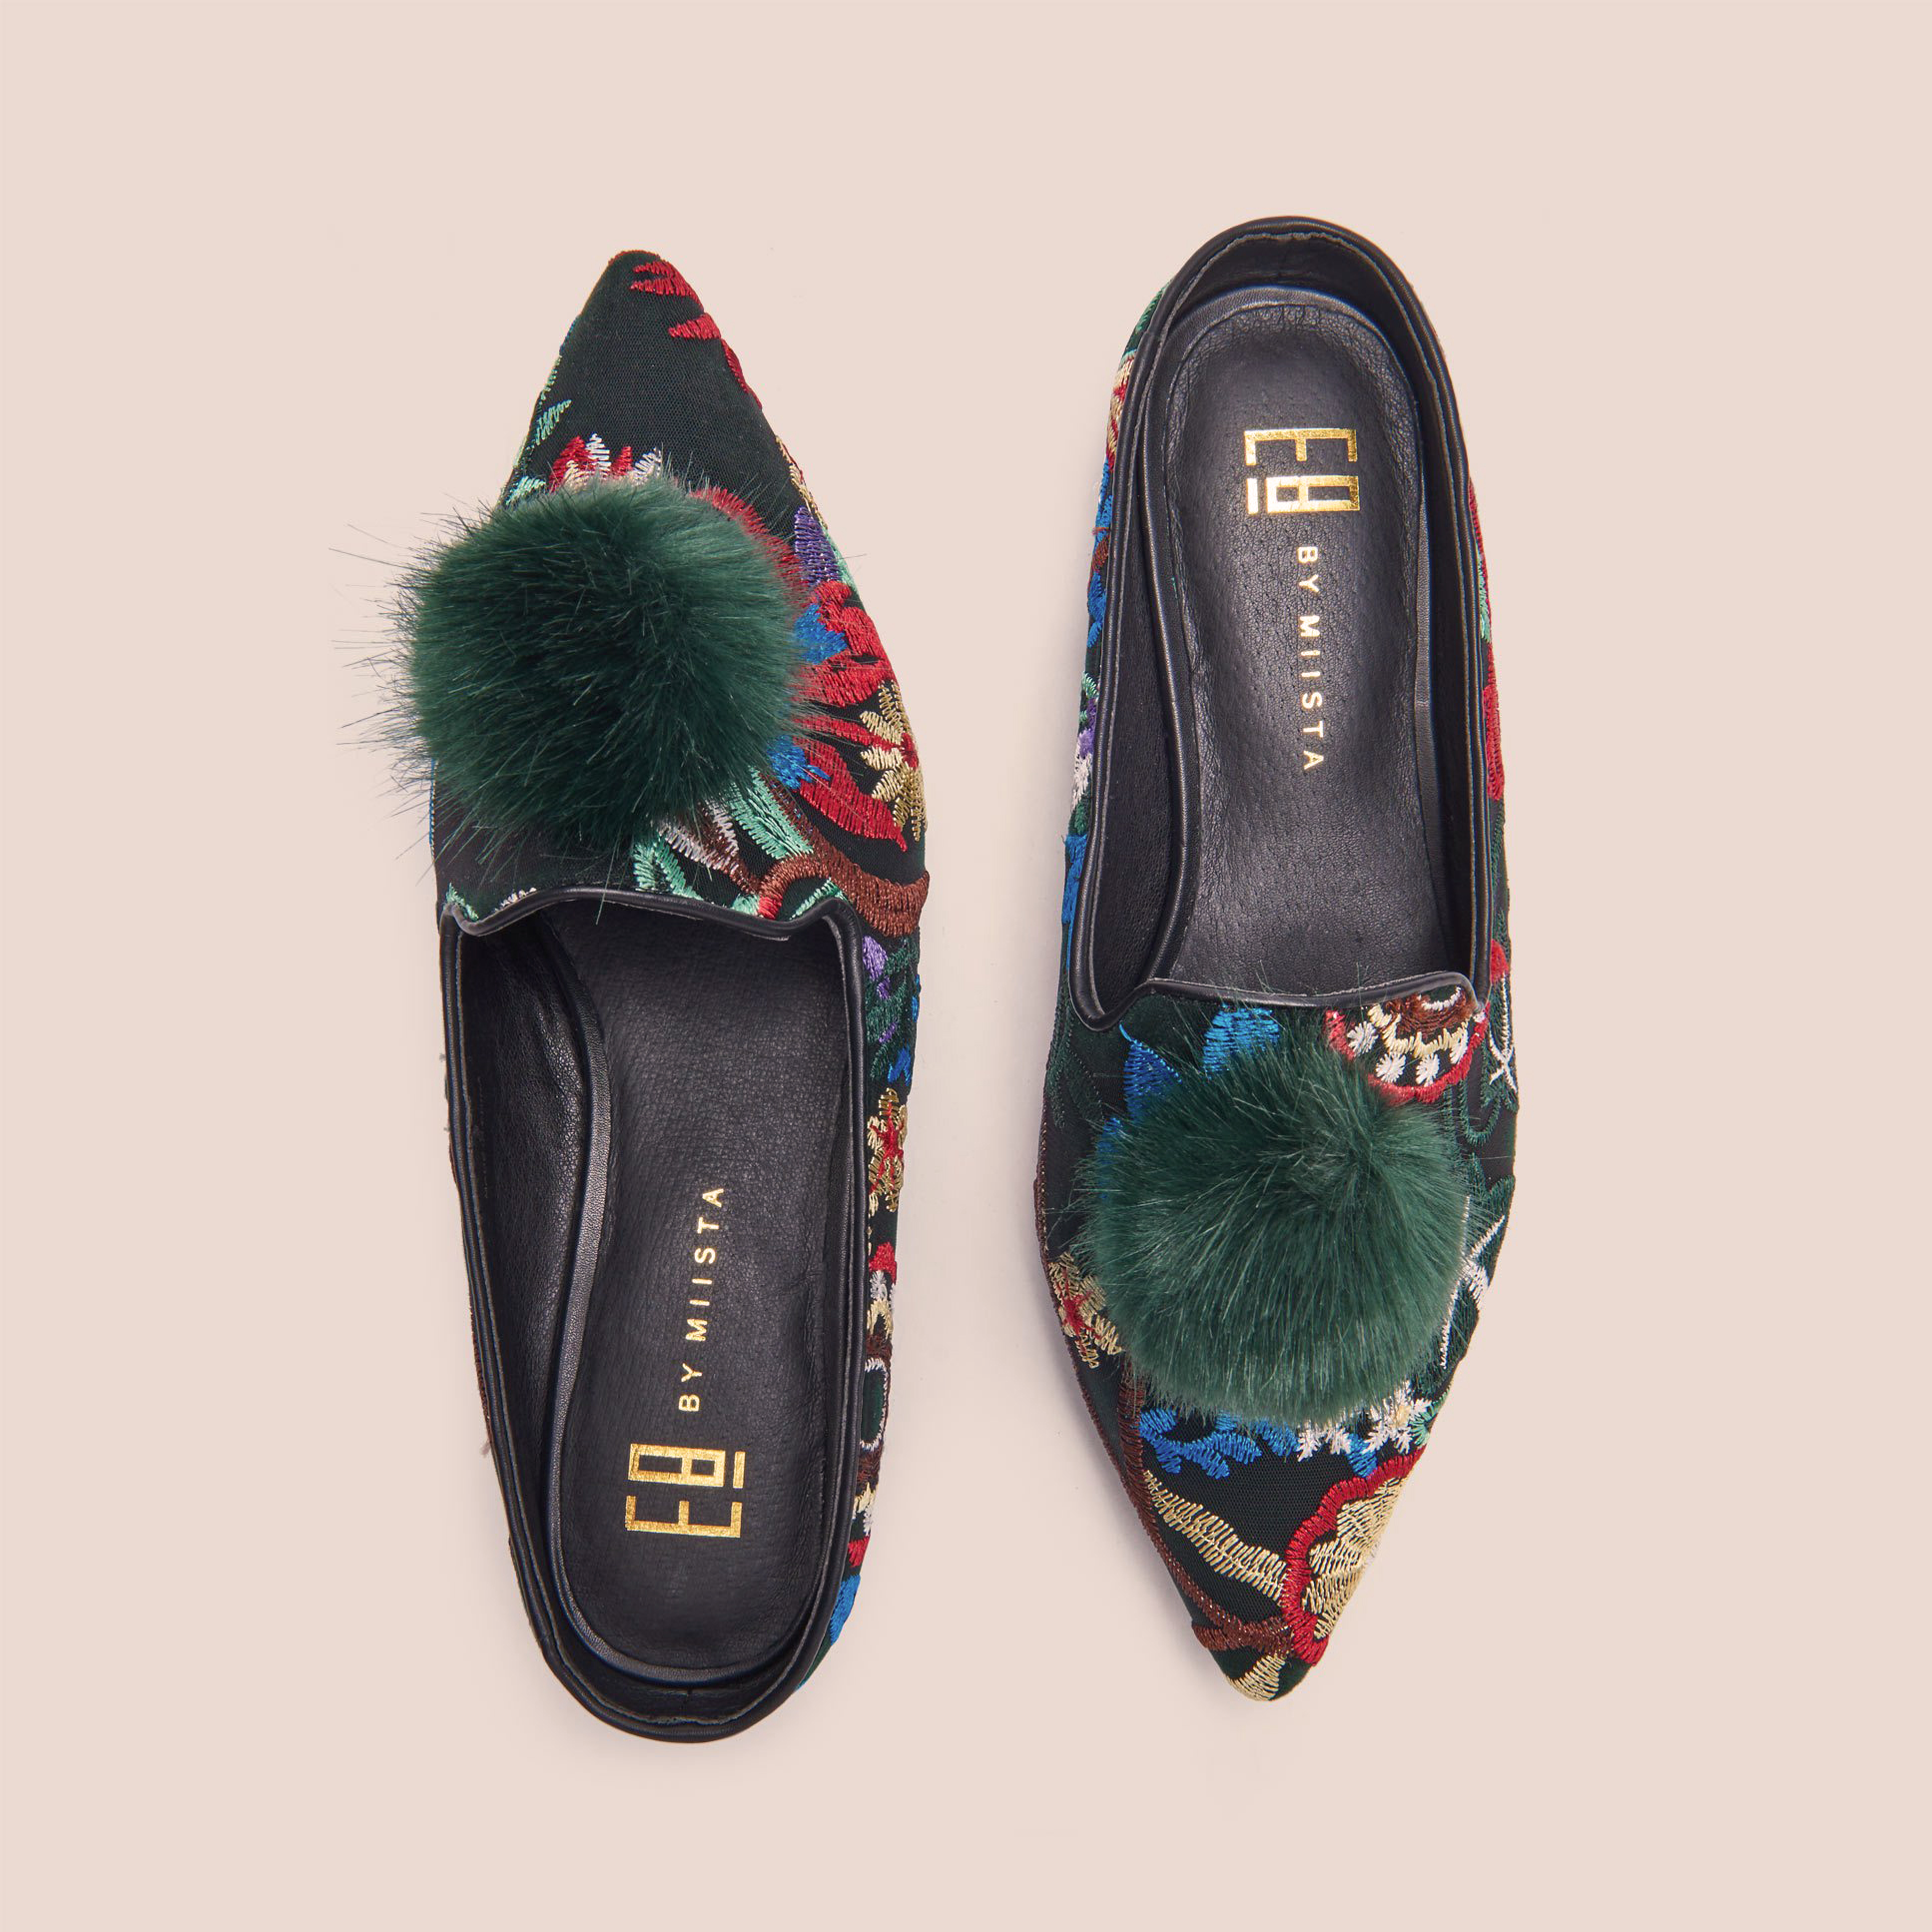 Poppy Green Embroidered Flats by E8 by Miista